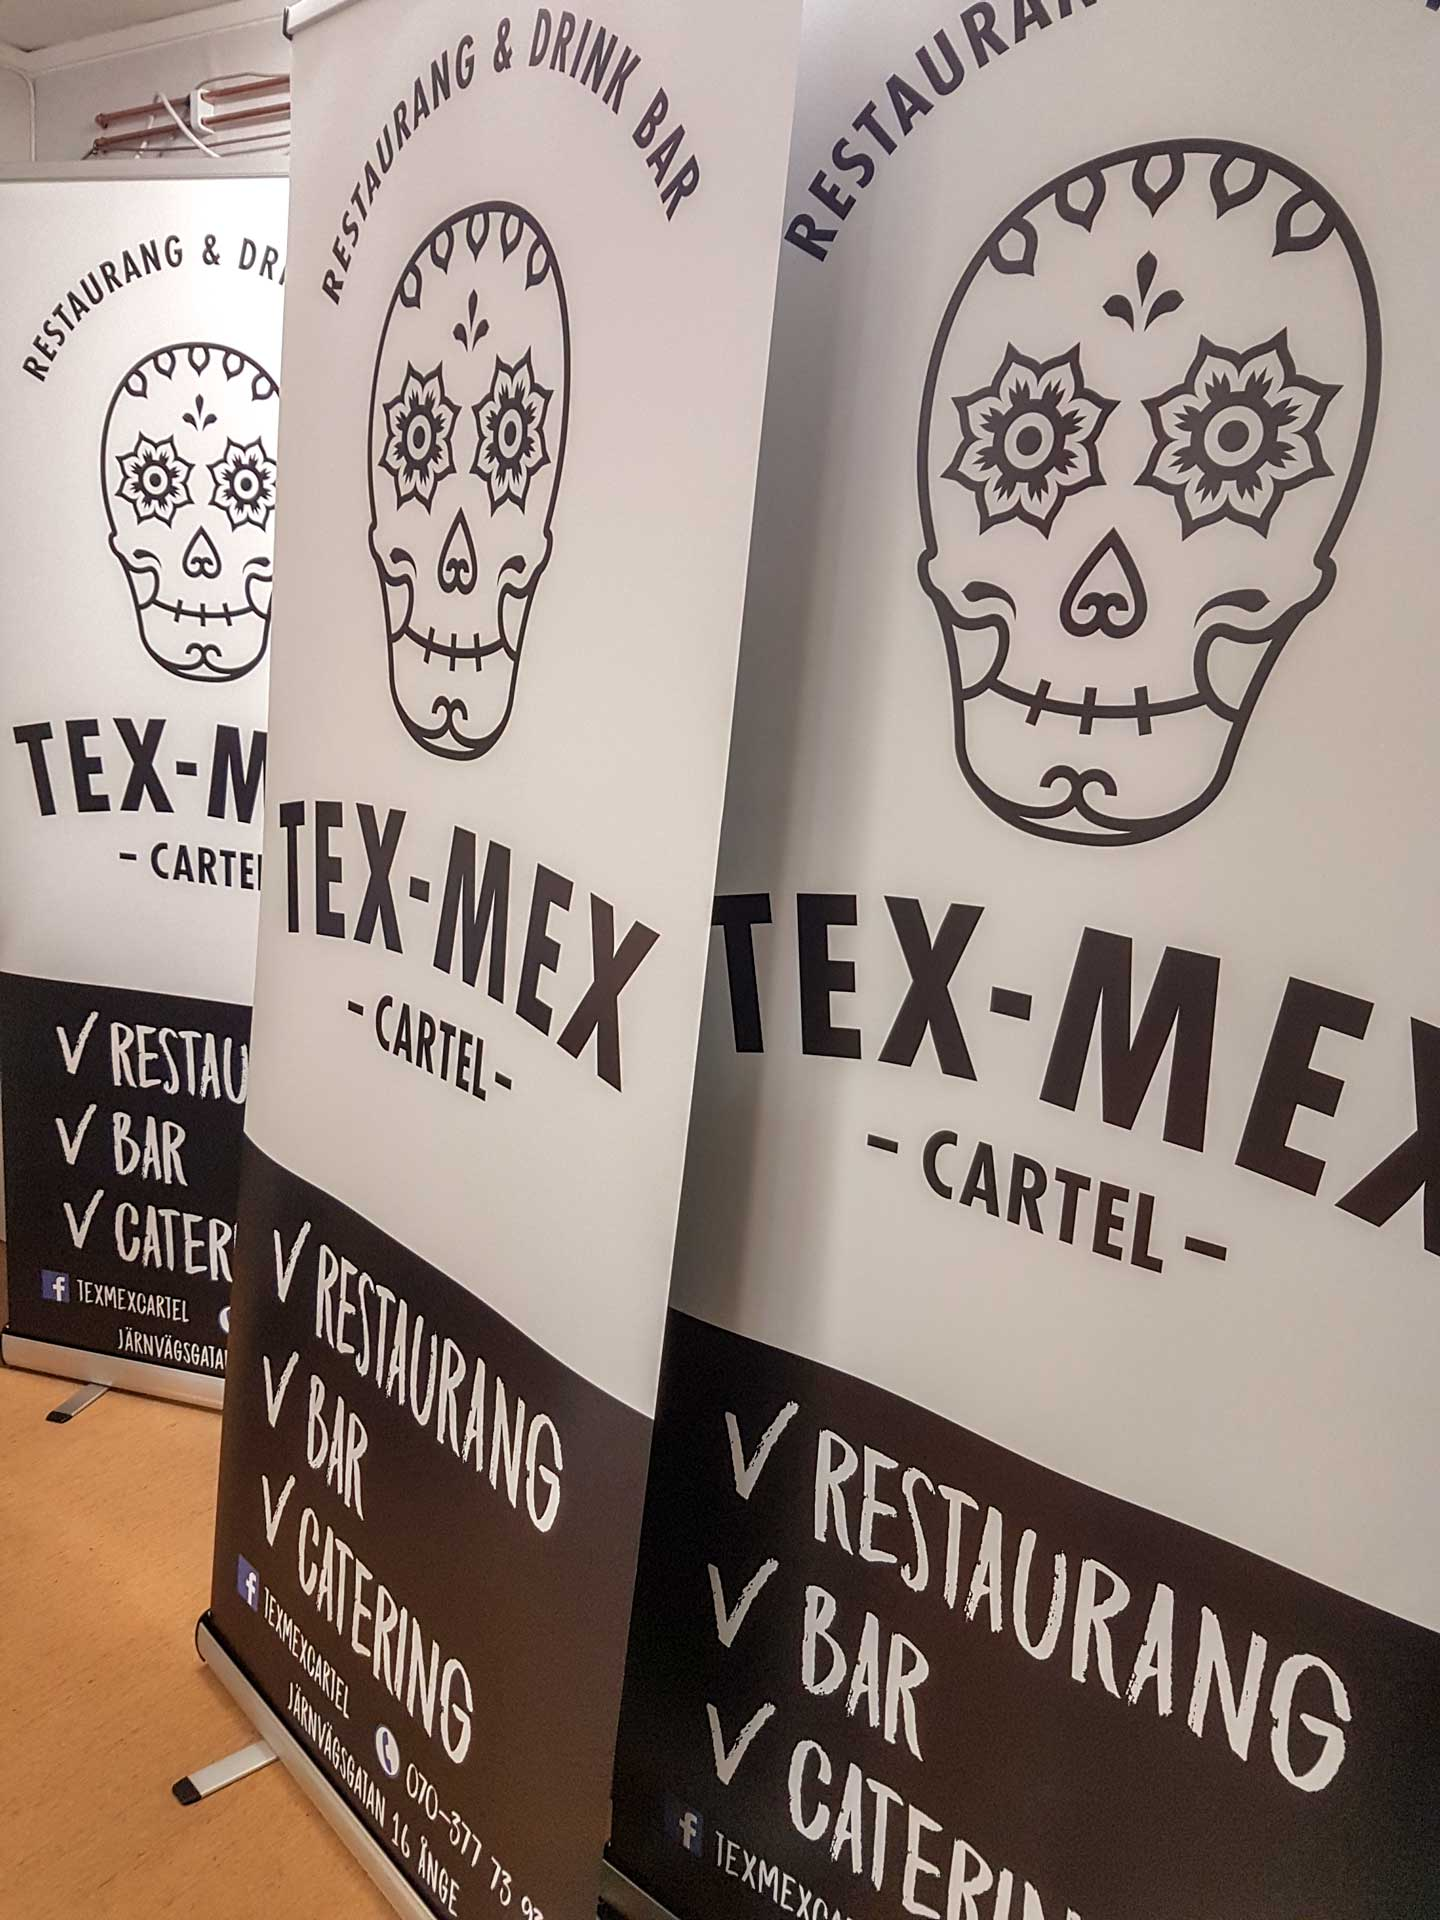 Tex-mex Cartel